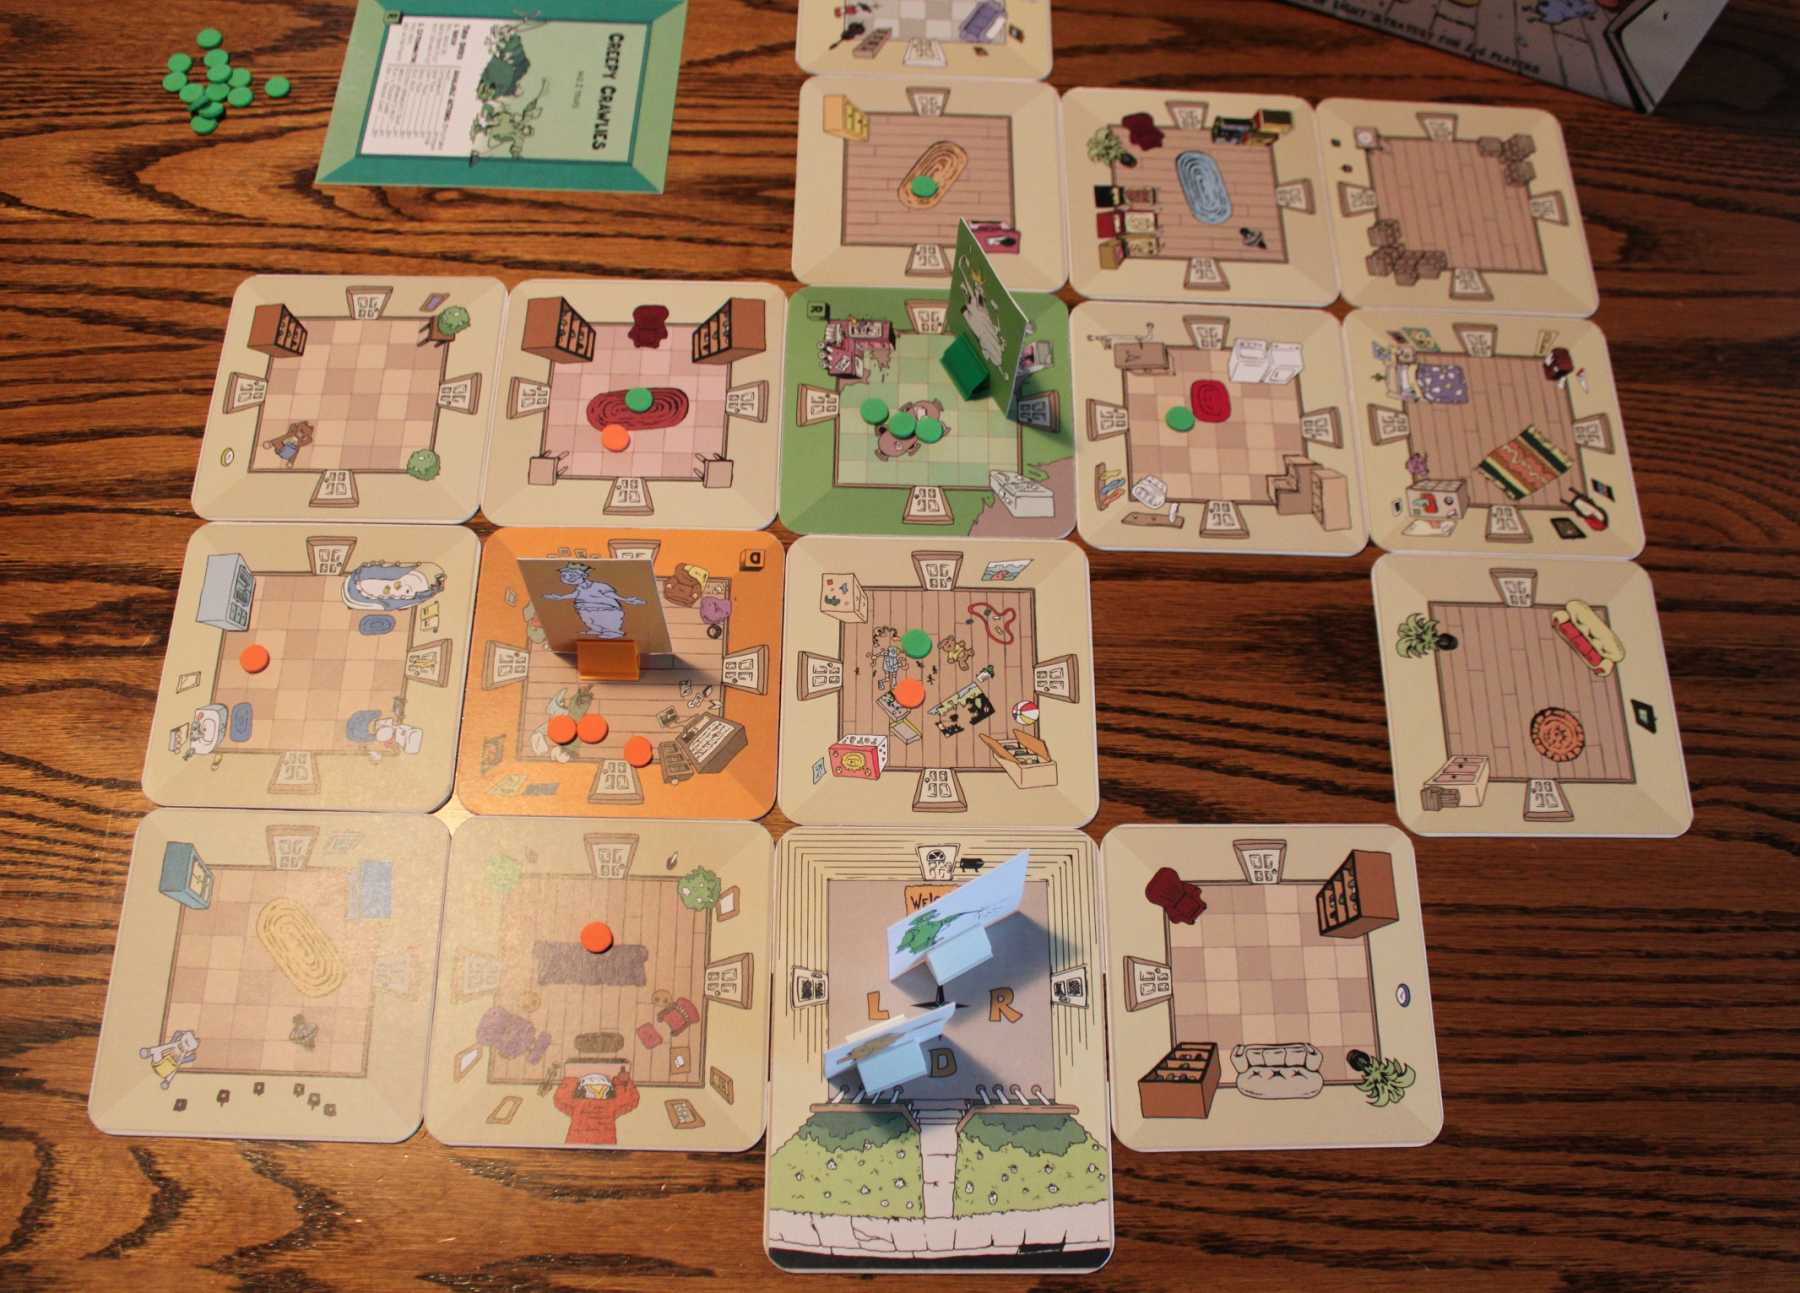 Pests Is A Top Notch Light Strategy Board Game | Pests